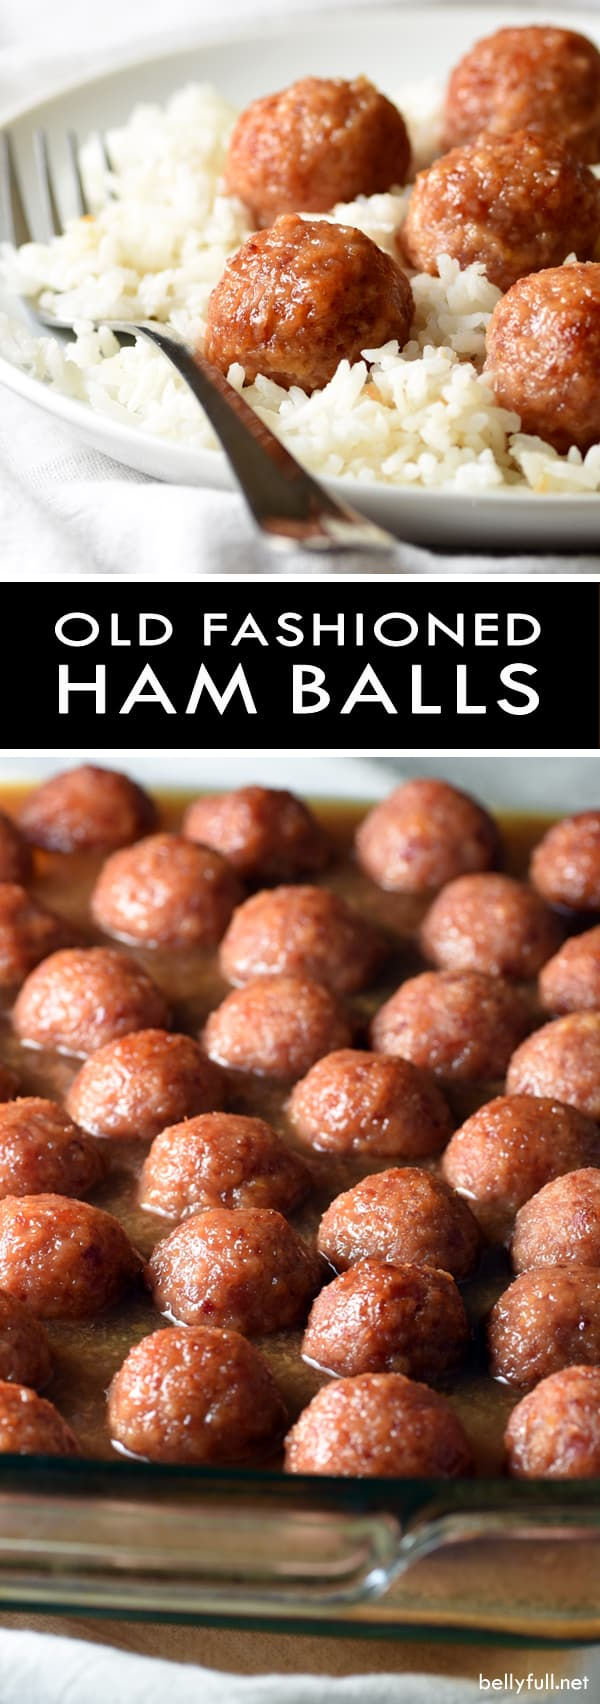 Old Fashioned Ham Balls are tender, sweet and salty meatballs of bliss! Serve over rice, in a stir fry, cut in half on pizza, or all on their own as an appetizer.